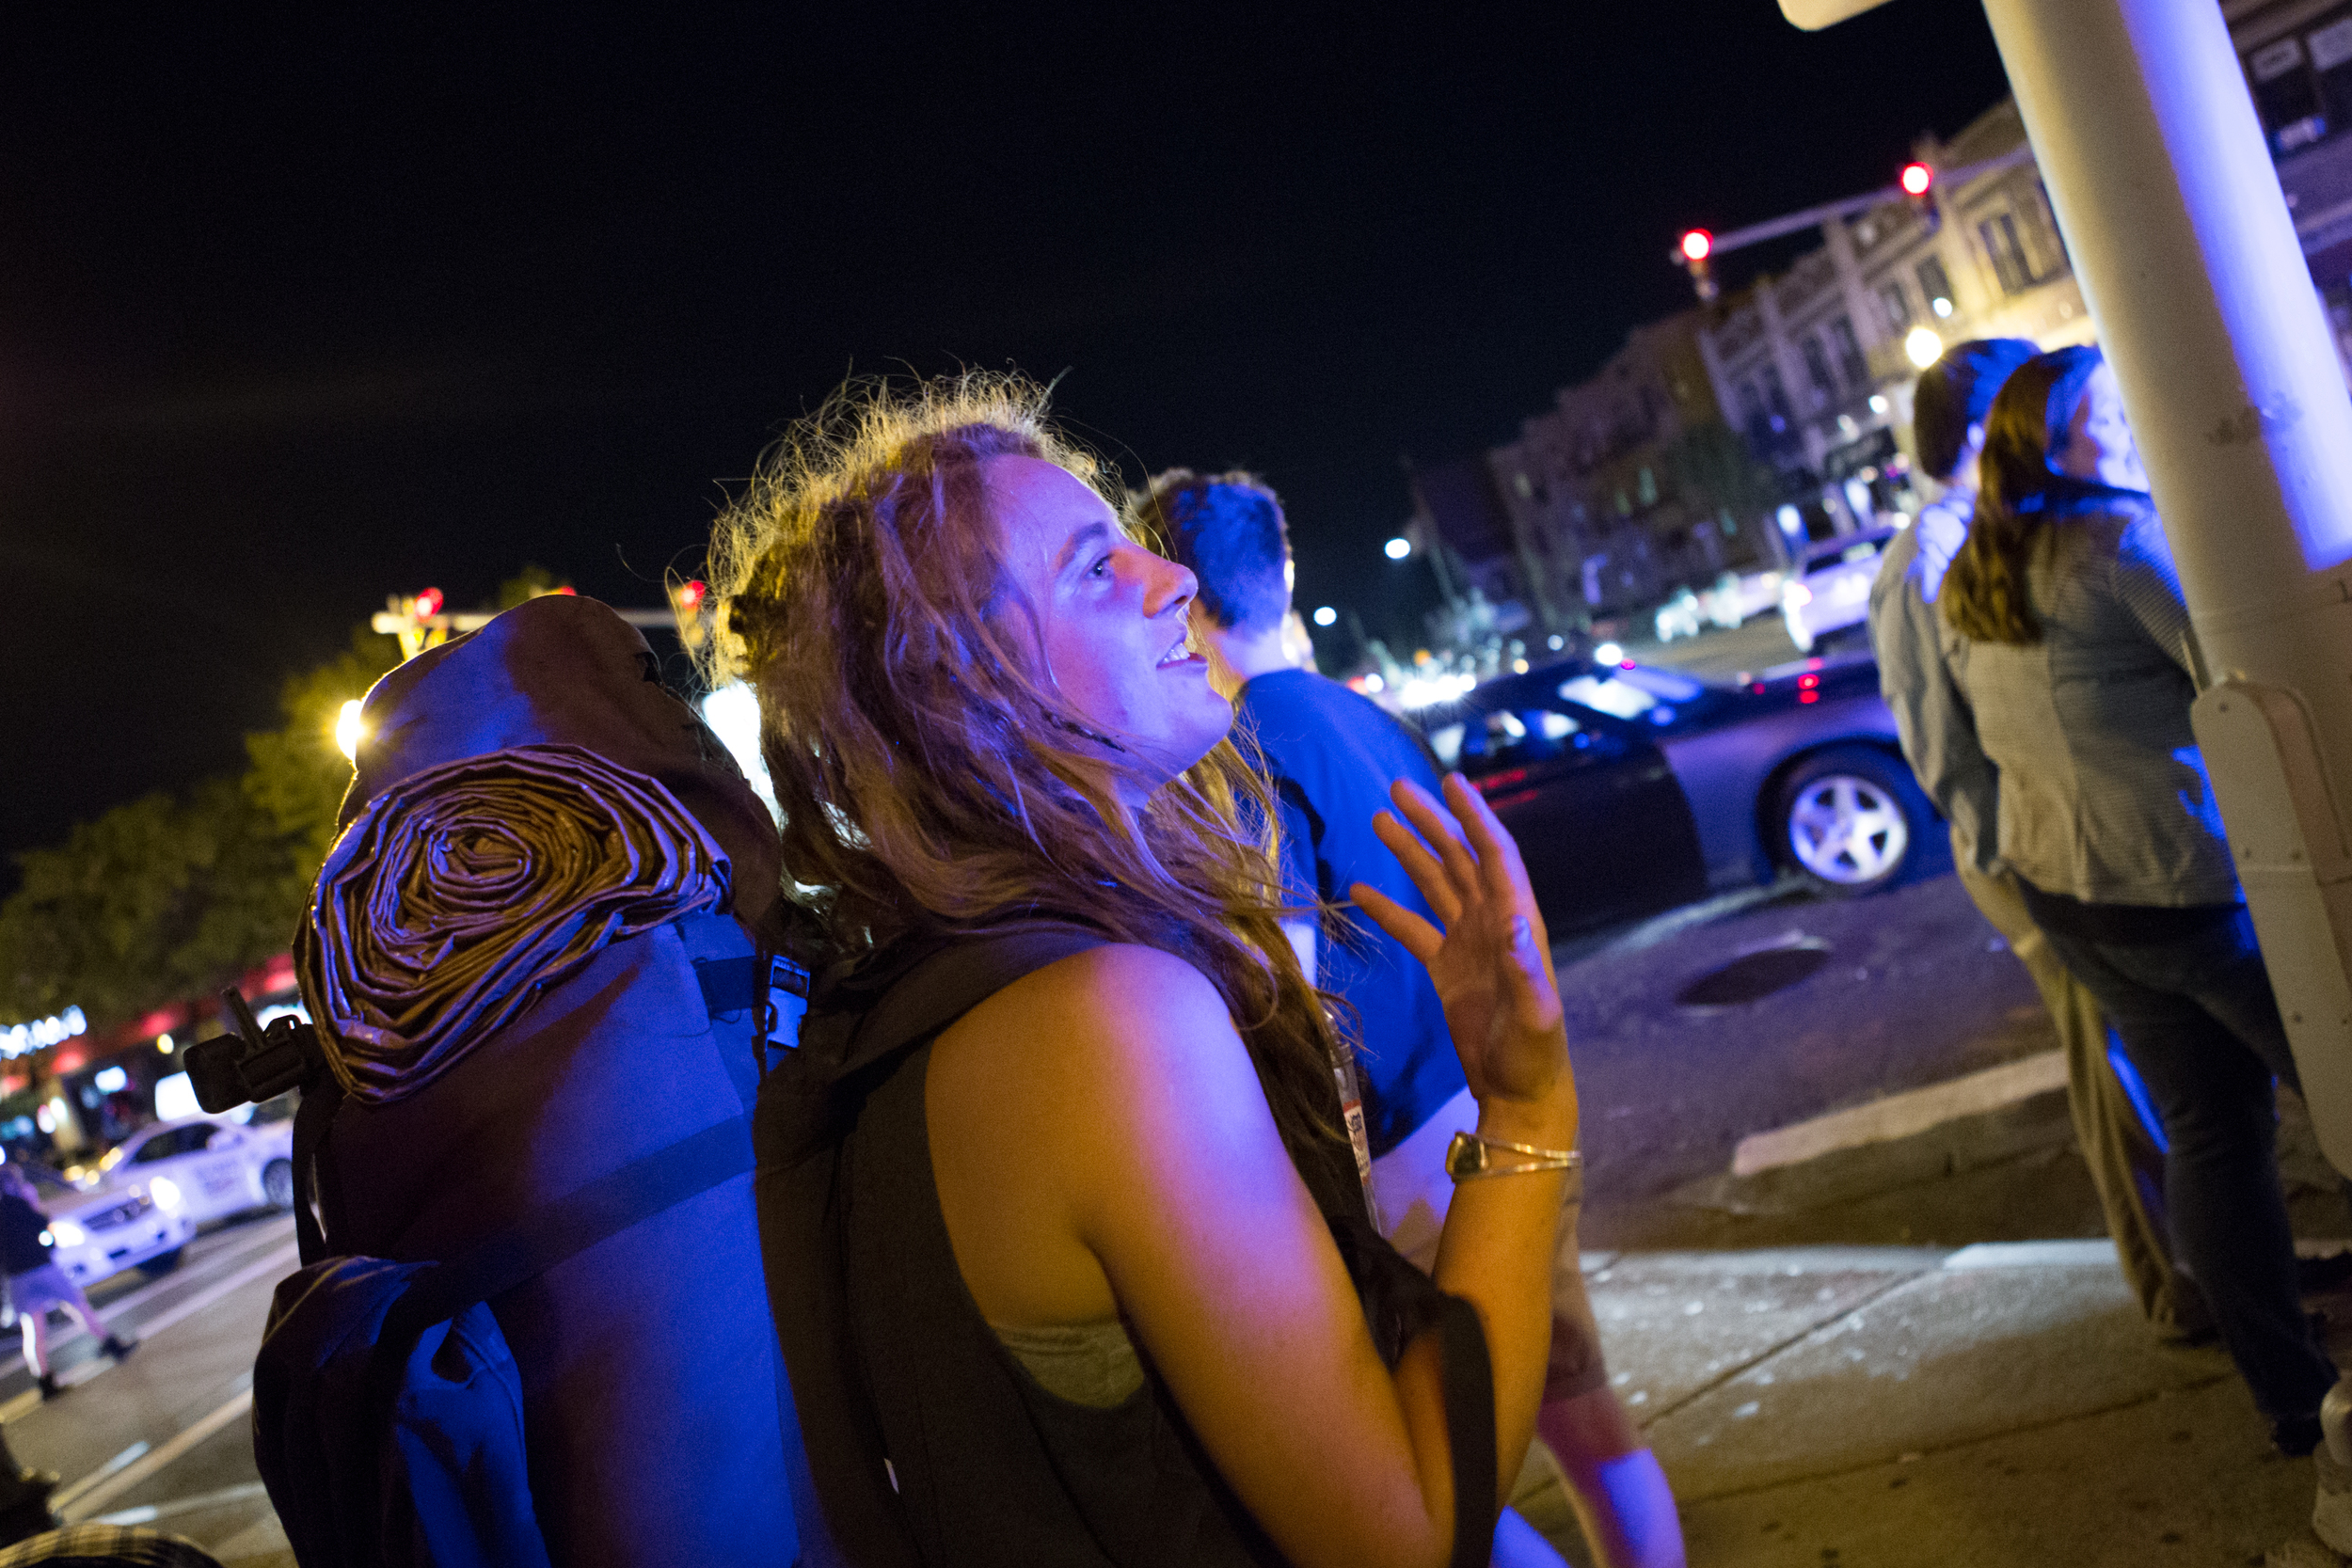 A 20-year-old homeless woman who asked to be identified as Toby reacts to police ordering her to leave the spot where she had been asking pedestrians for money and alcohol outside Blanchard's liquor store in Allston. Photo credit: Justin Saglio